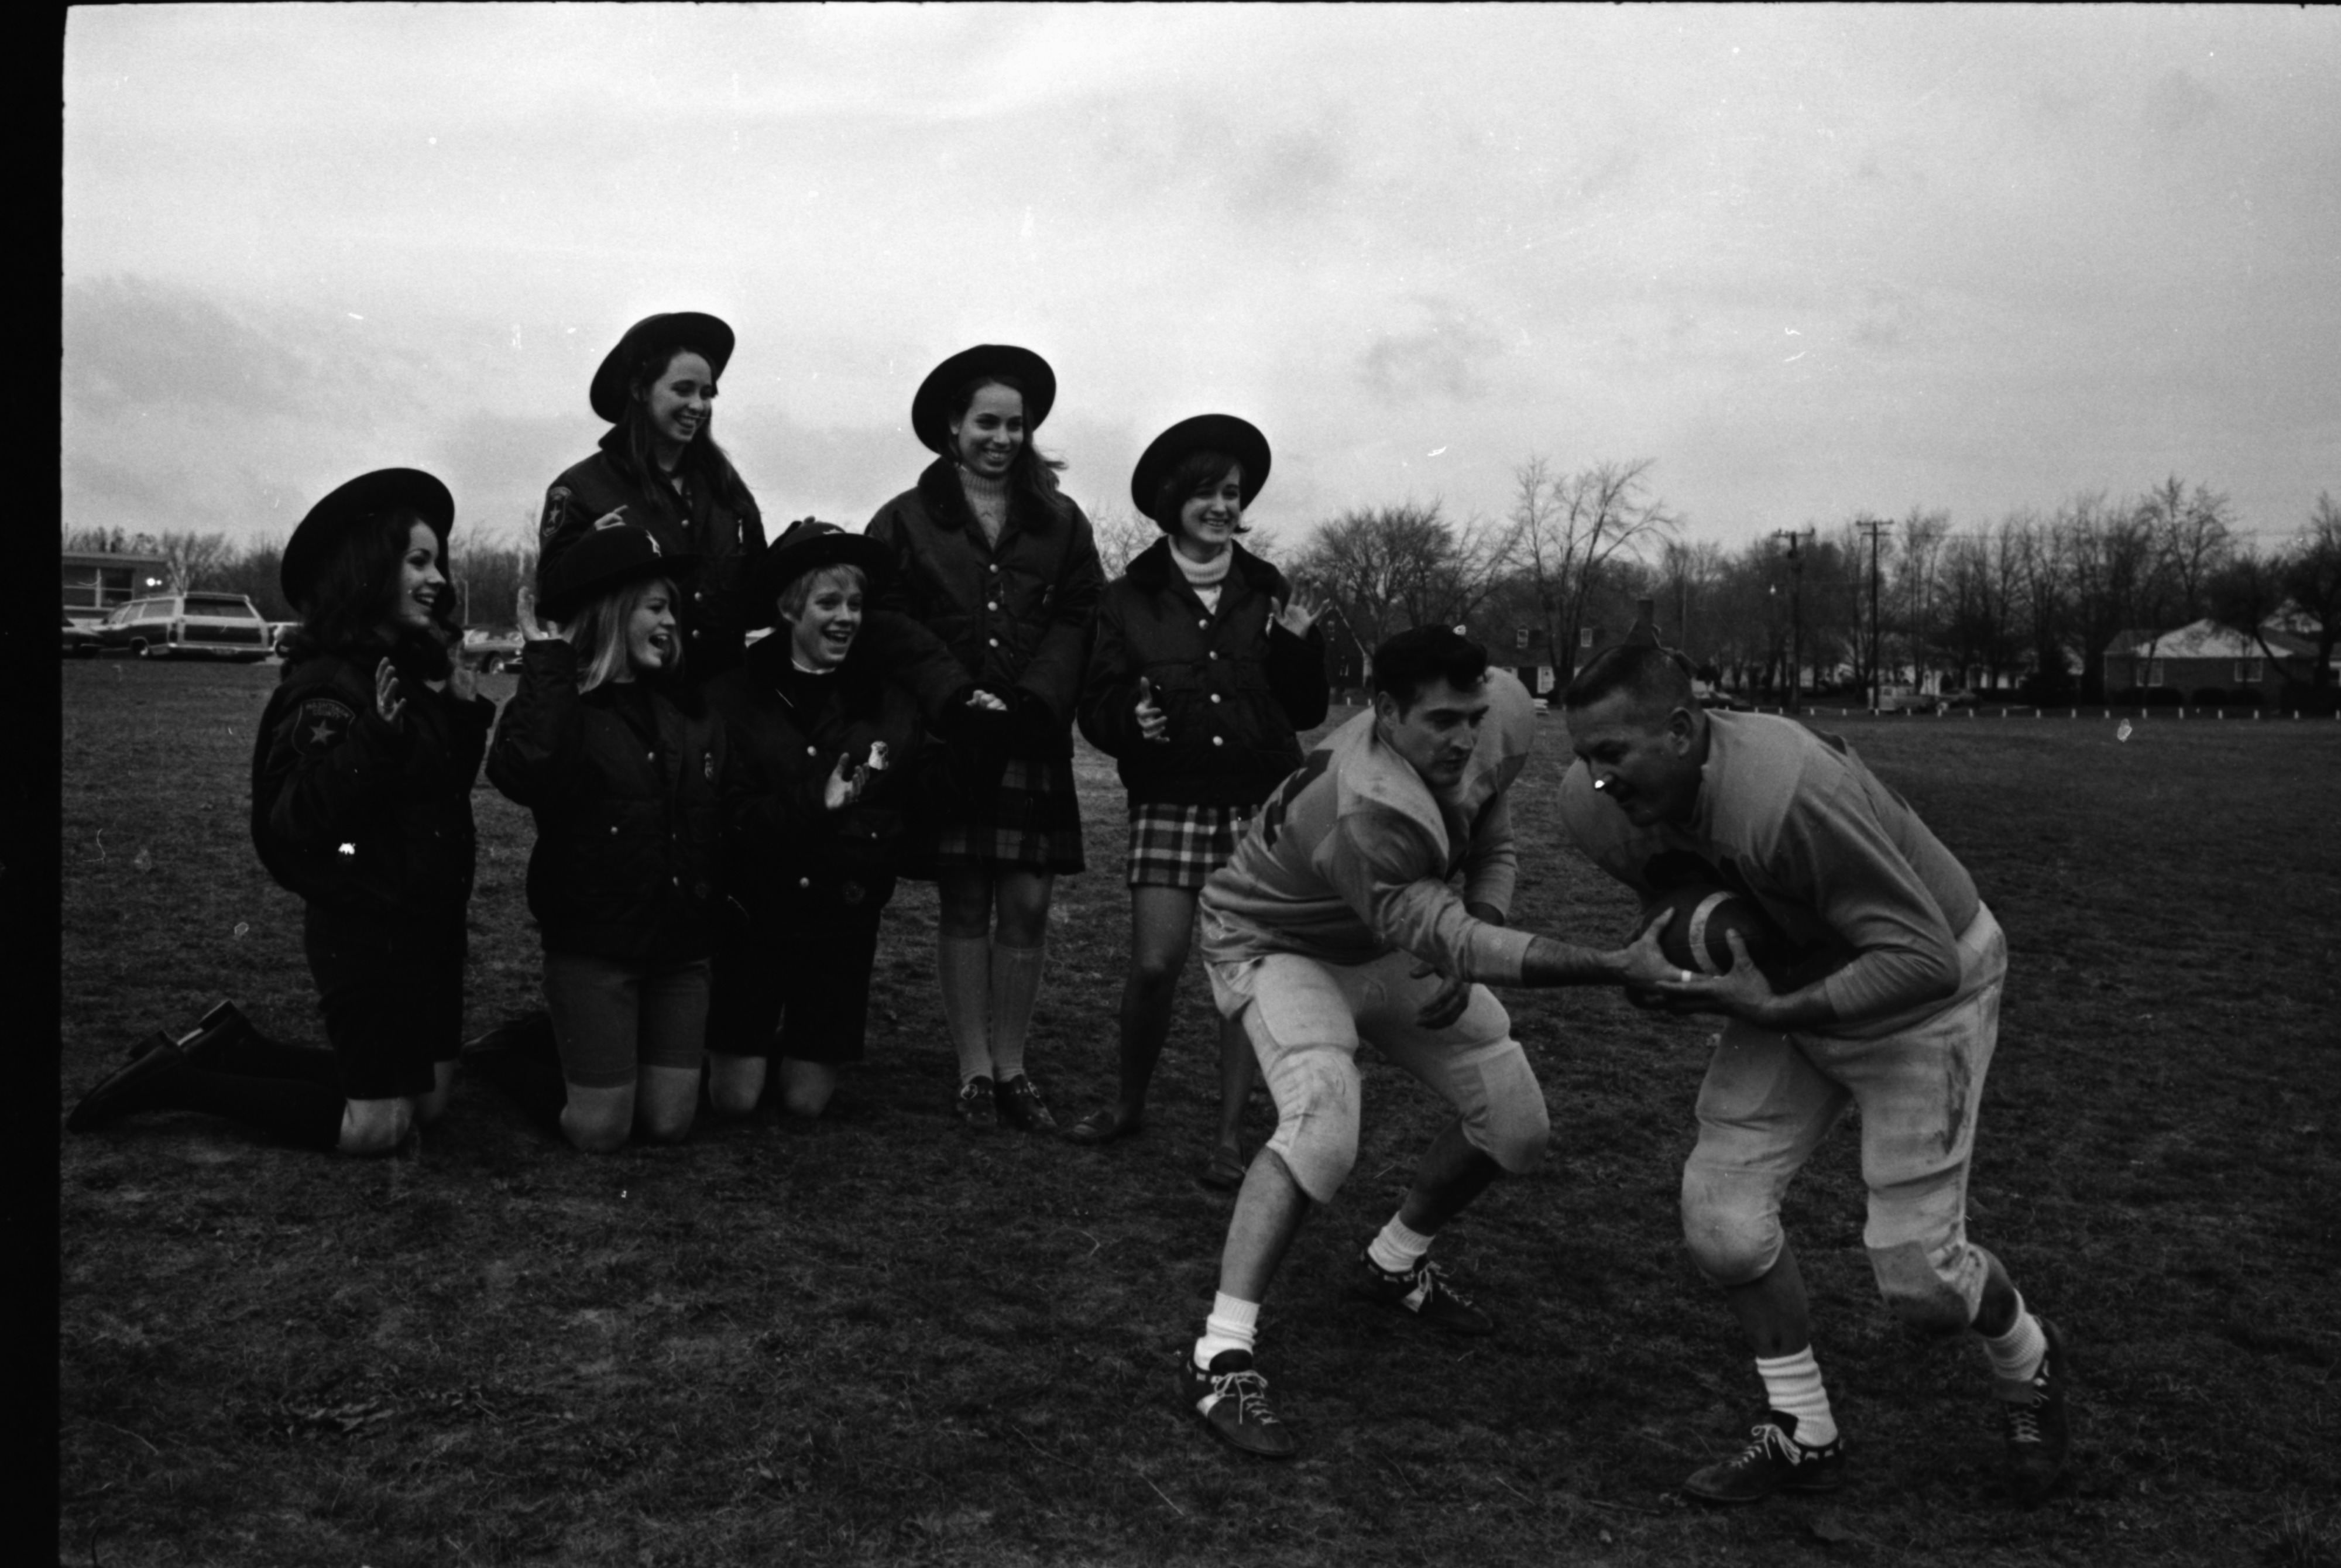 Girls Laugh While Watching Pigs Football Practice, December 1969 image